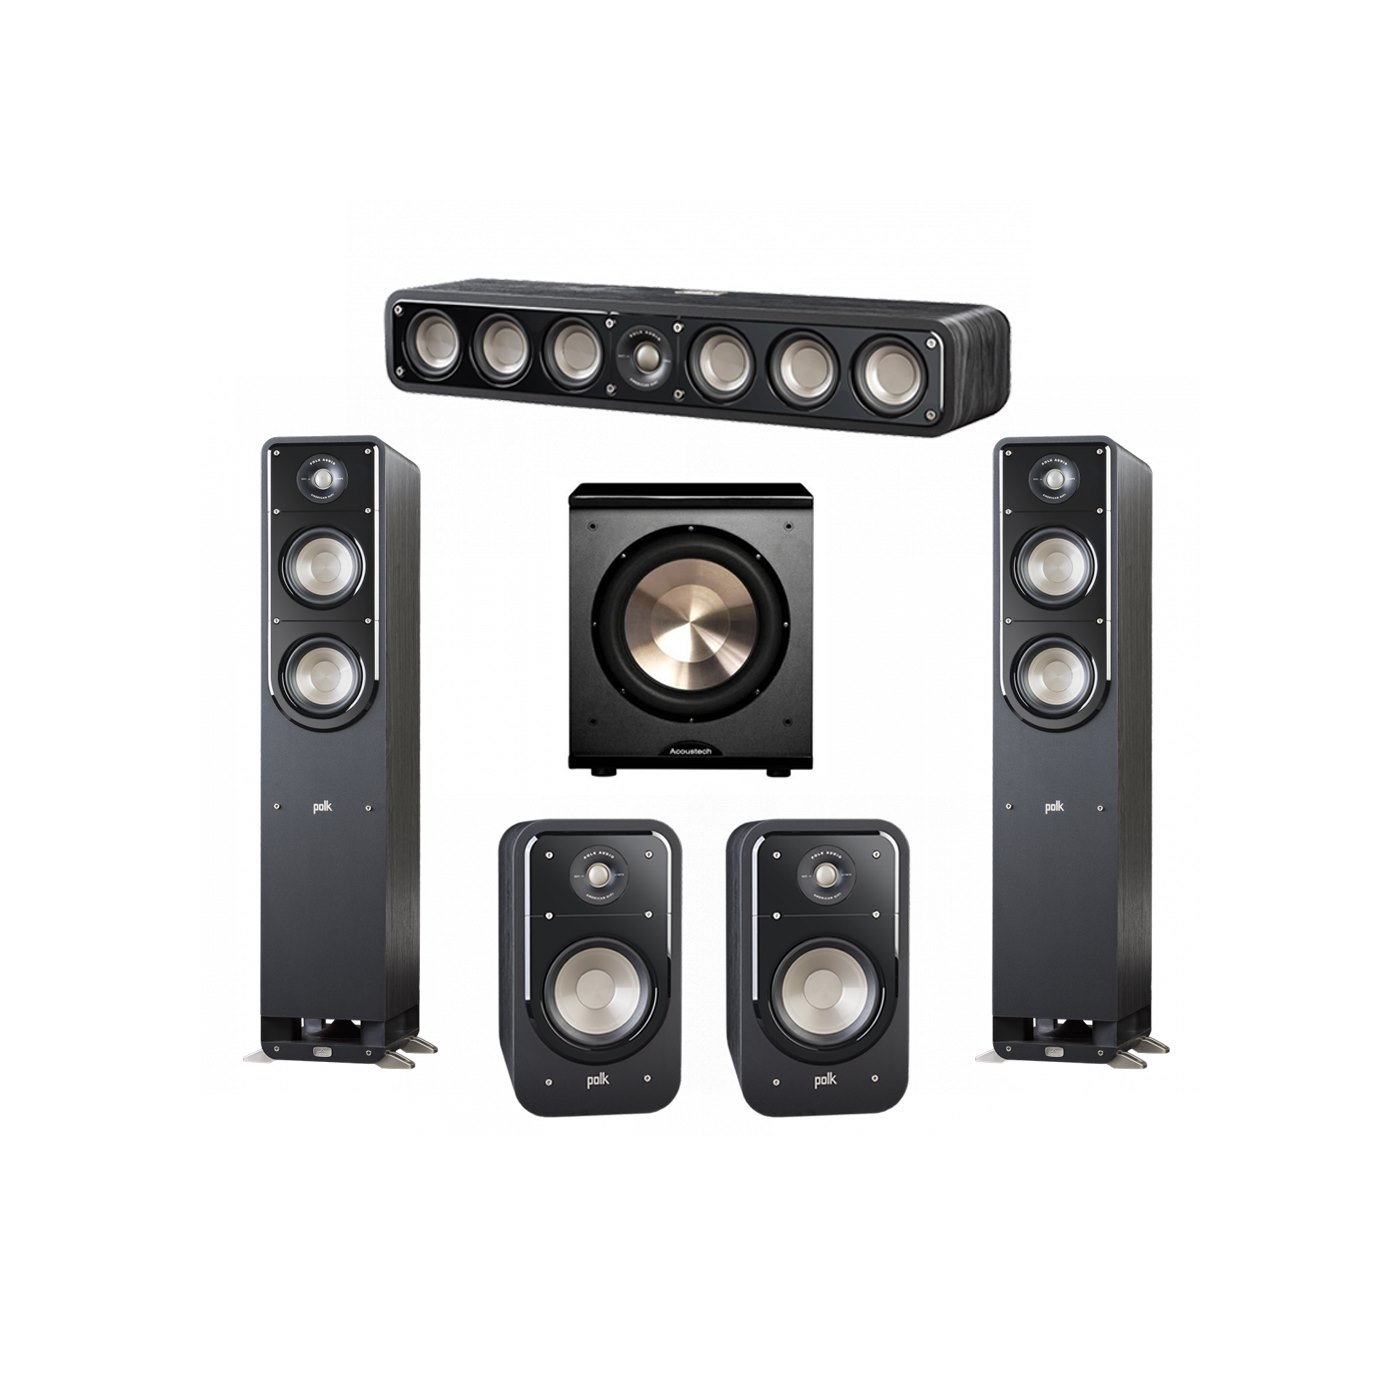 Polk Audio Signature 5.1 System with 2 S50 Tower Speaker, 1 Polk S35 Center Speaker, 2 Polk S20 Bookshelf Speaker, 1 BIC/Acoustech Platinum Series PL-200 Subwoofer